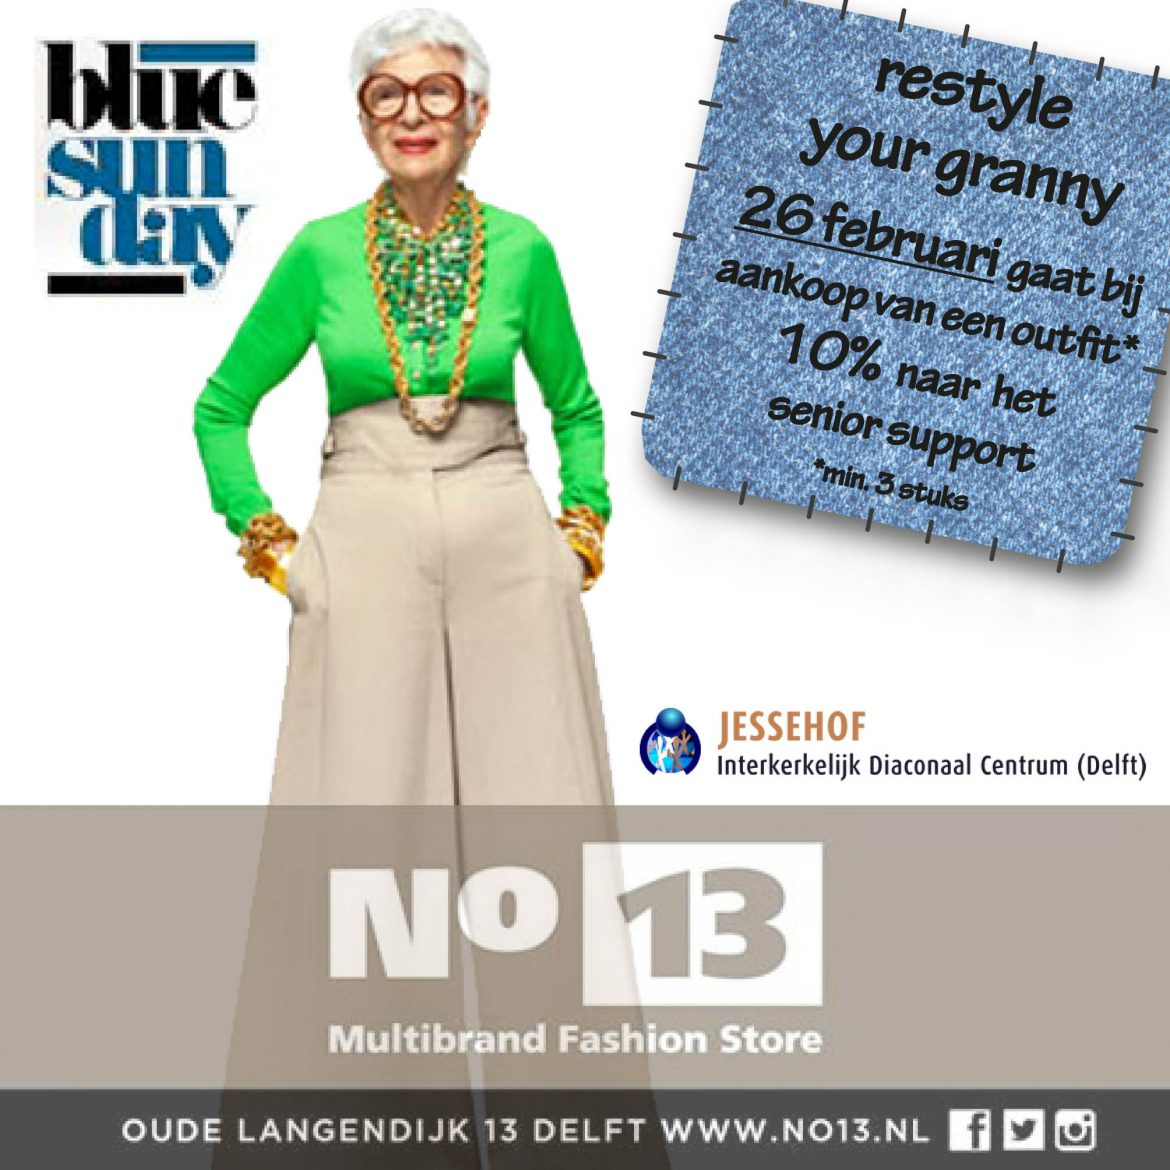 restyle_your_granny?no13